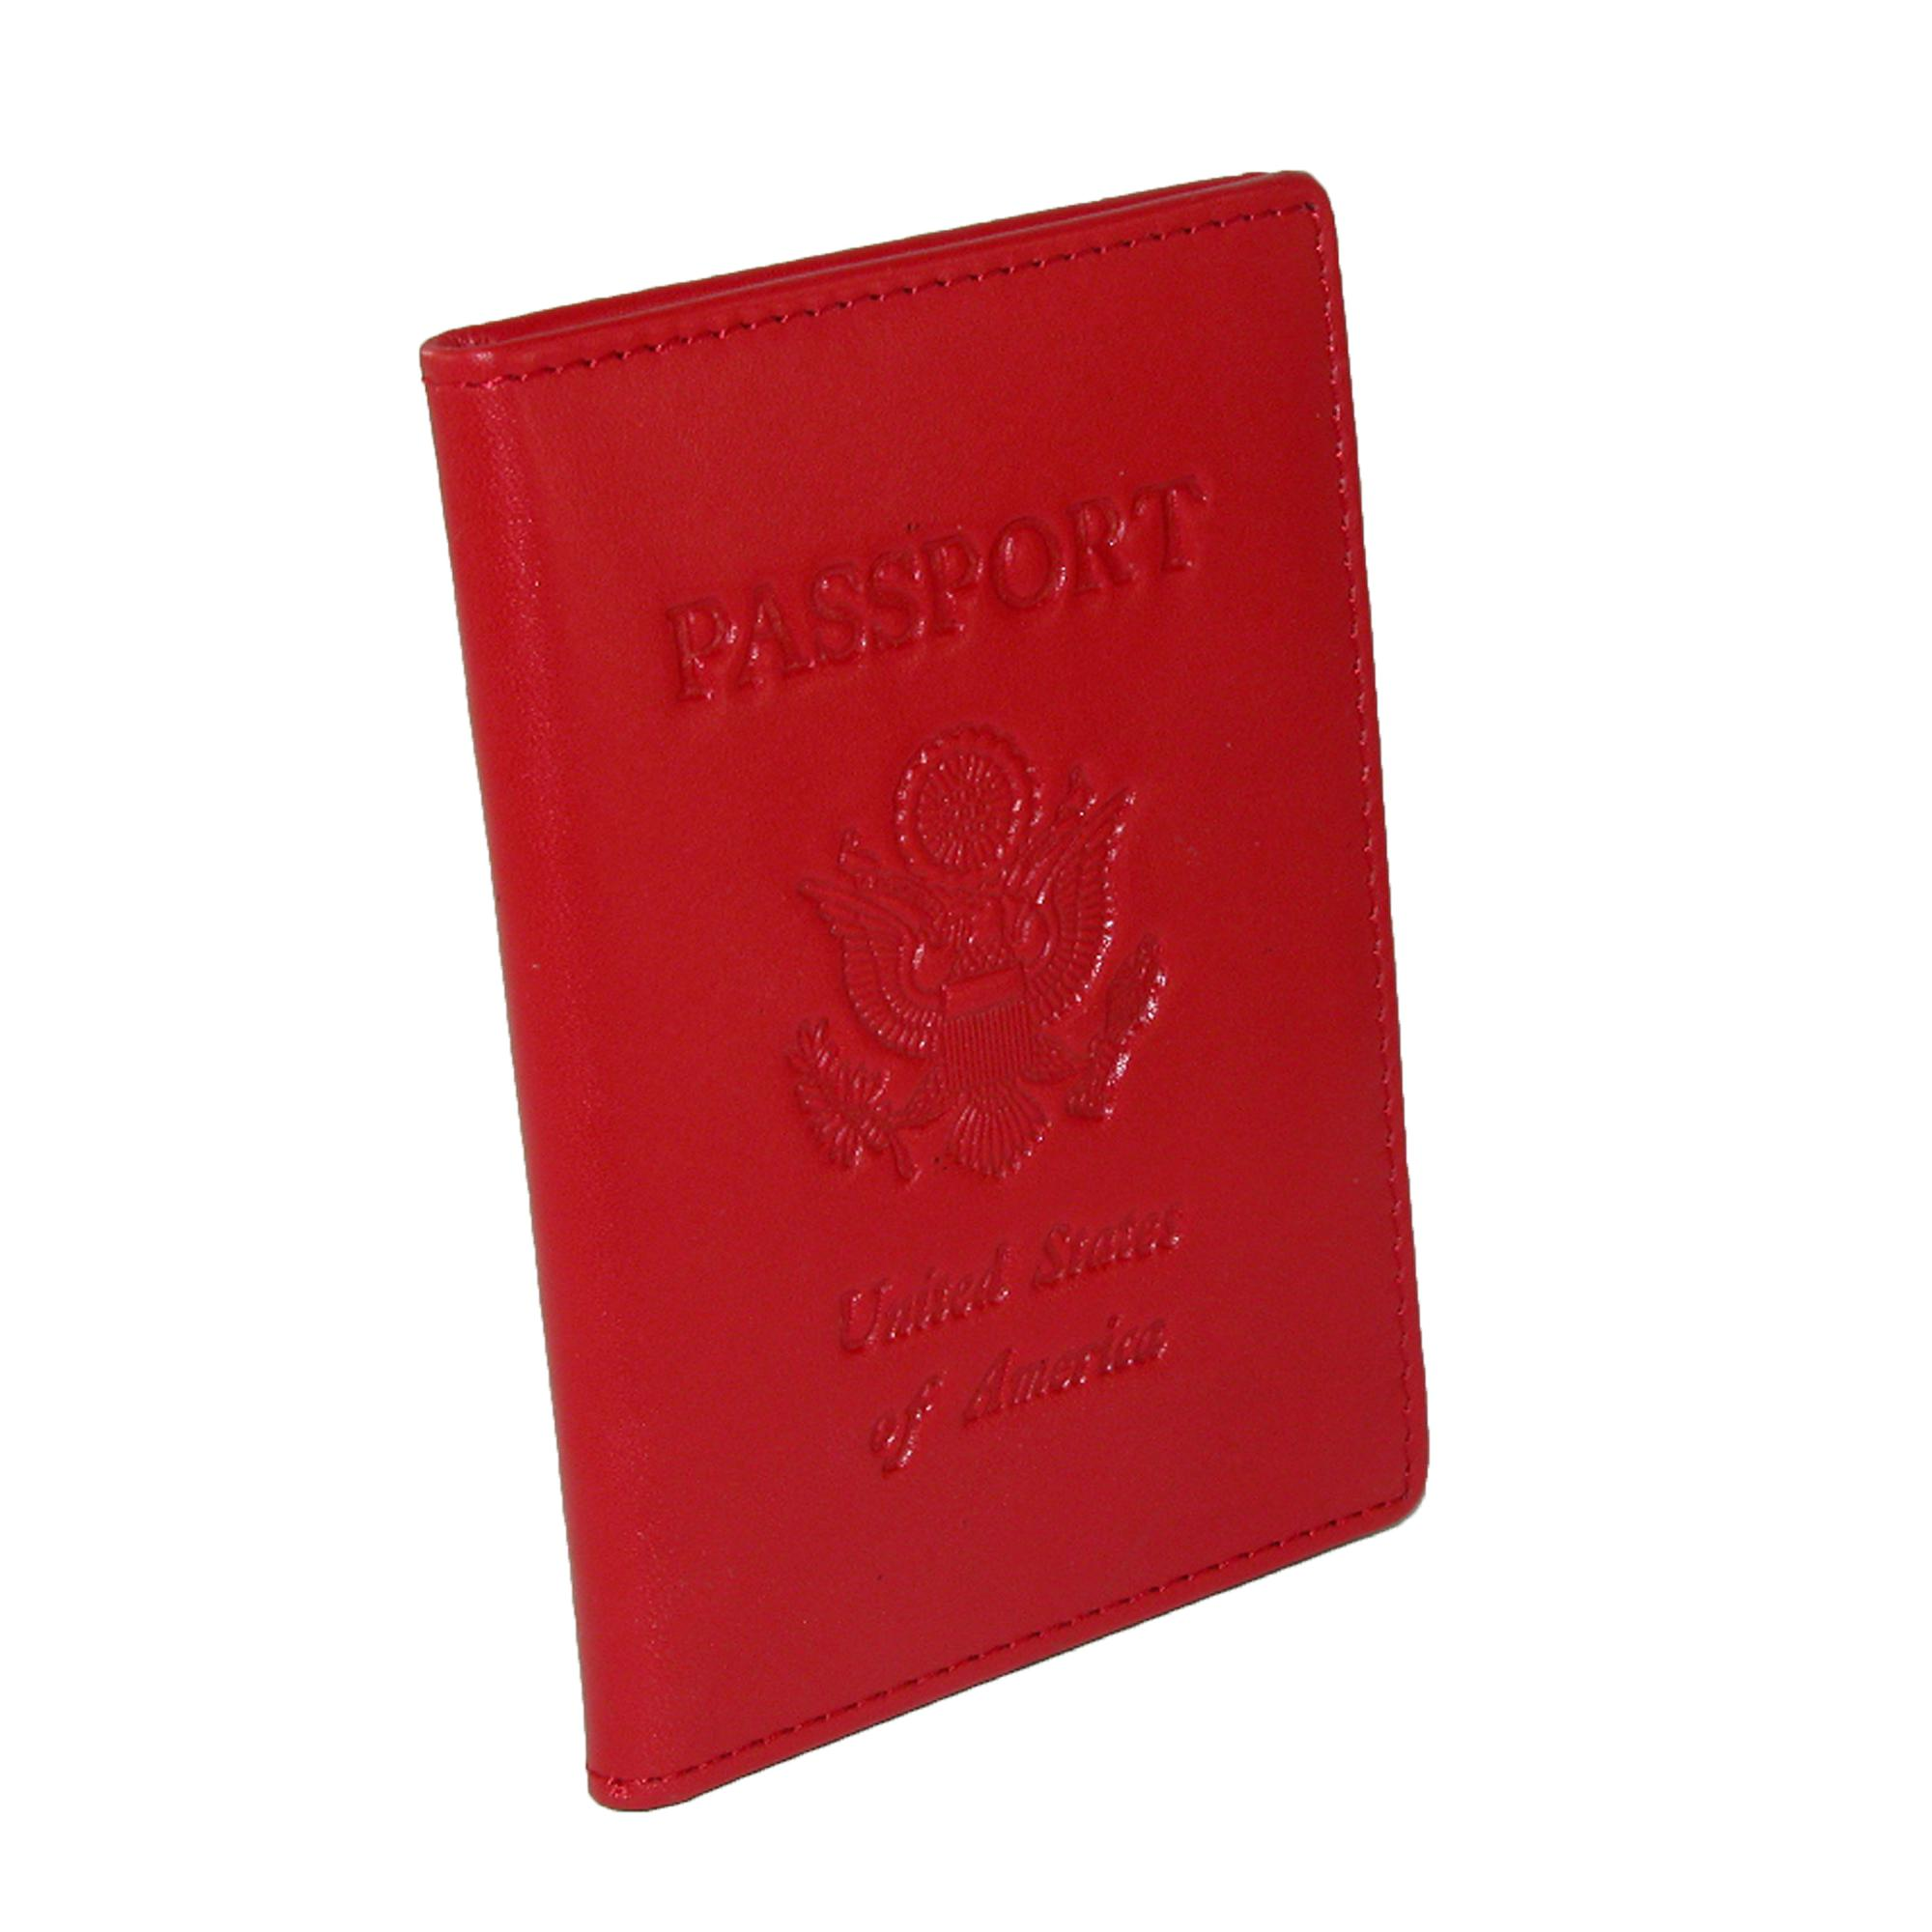 Winn_International_Leather_with_US_Emblem_Premium_Passport_Cover_